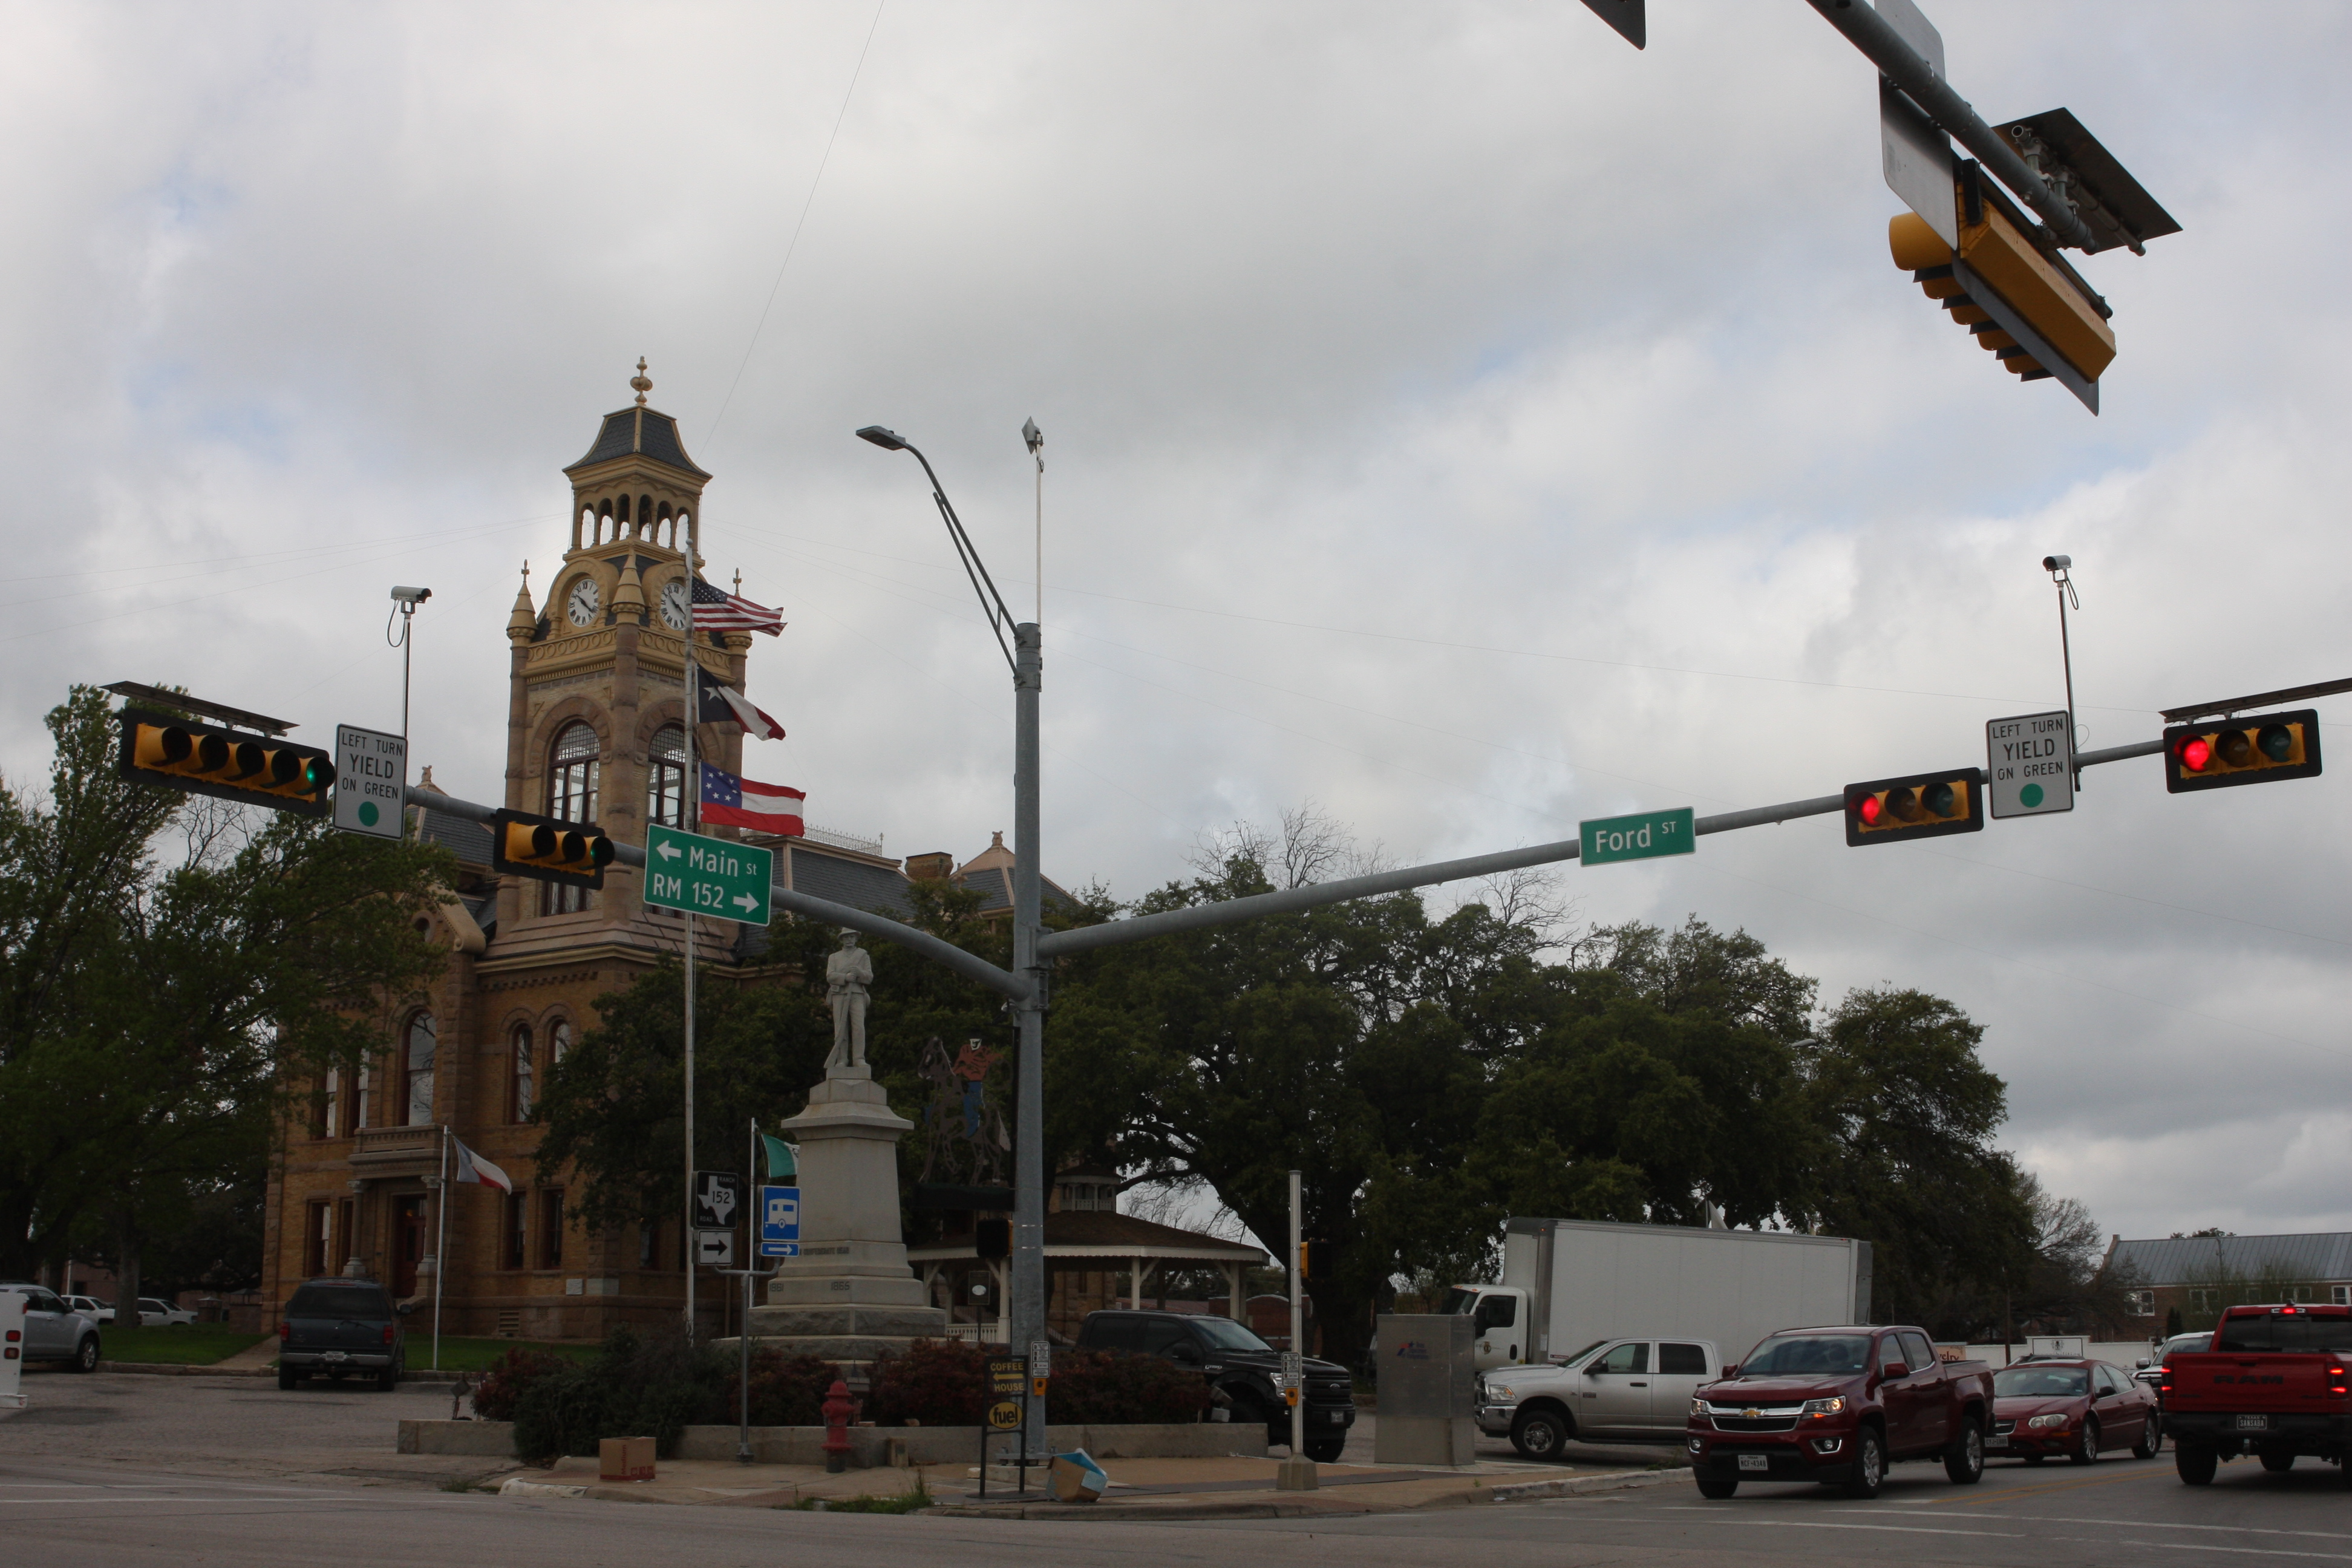 Main street in the town of Llano.